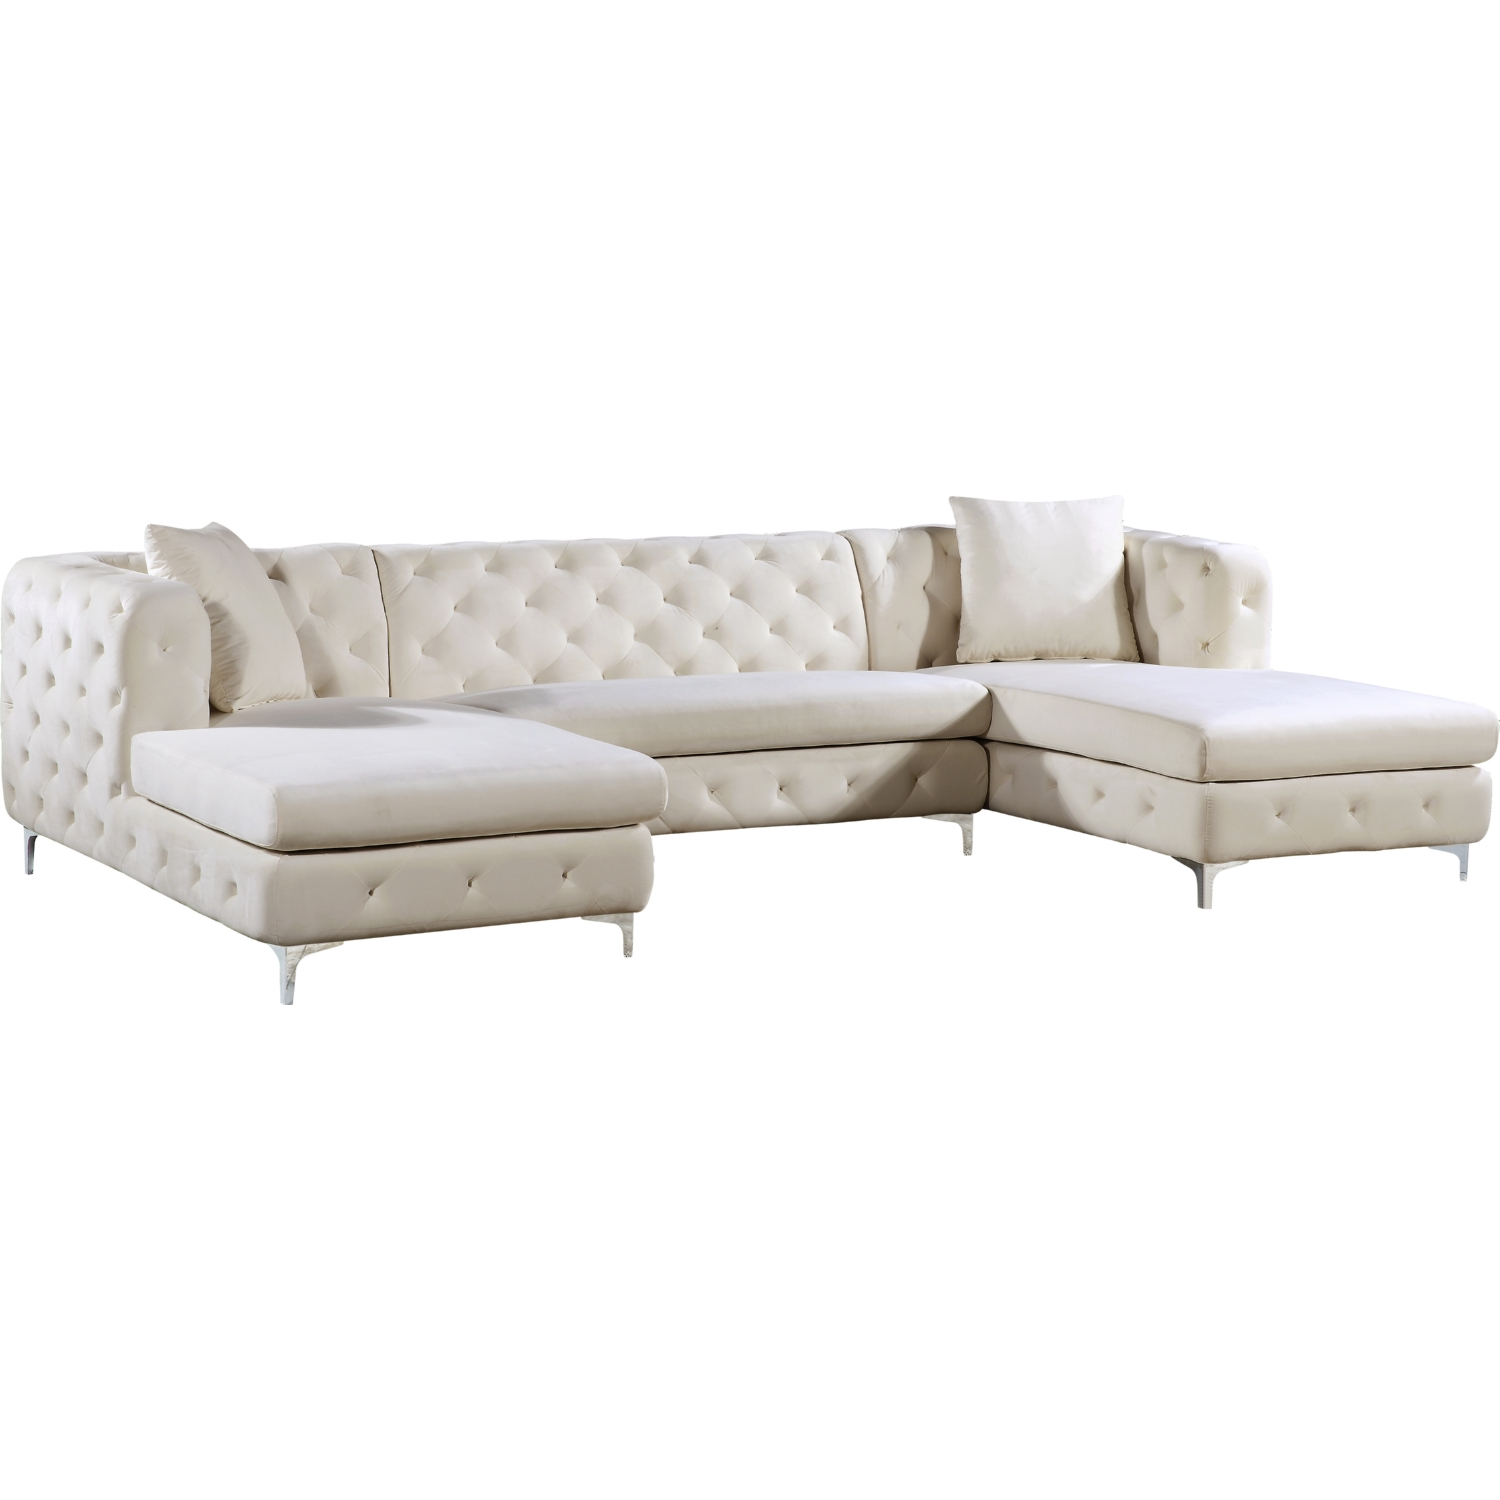 Meridian 664Cream-Sectional Gail 3 Piece Double Chaise